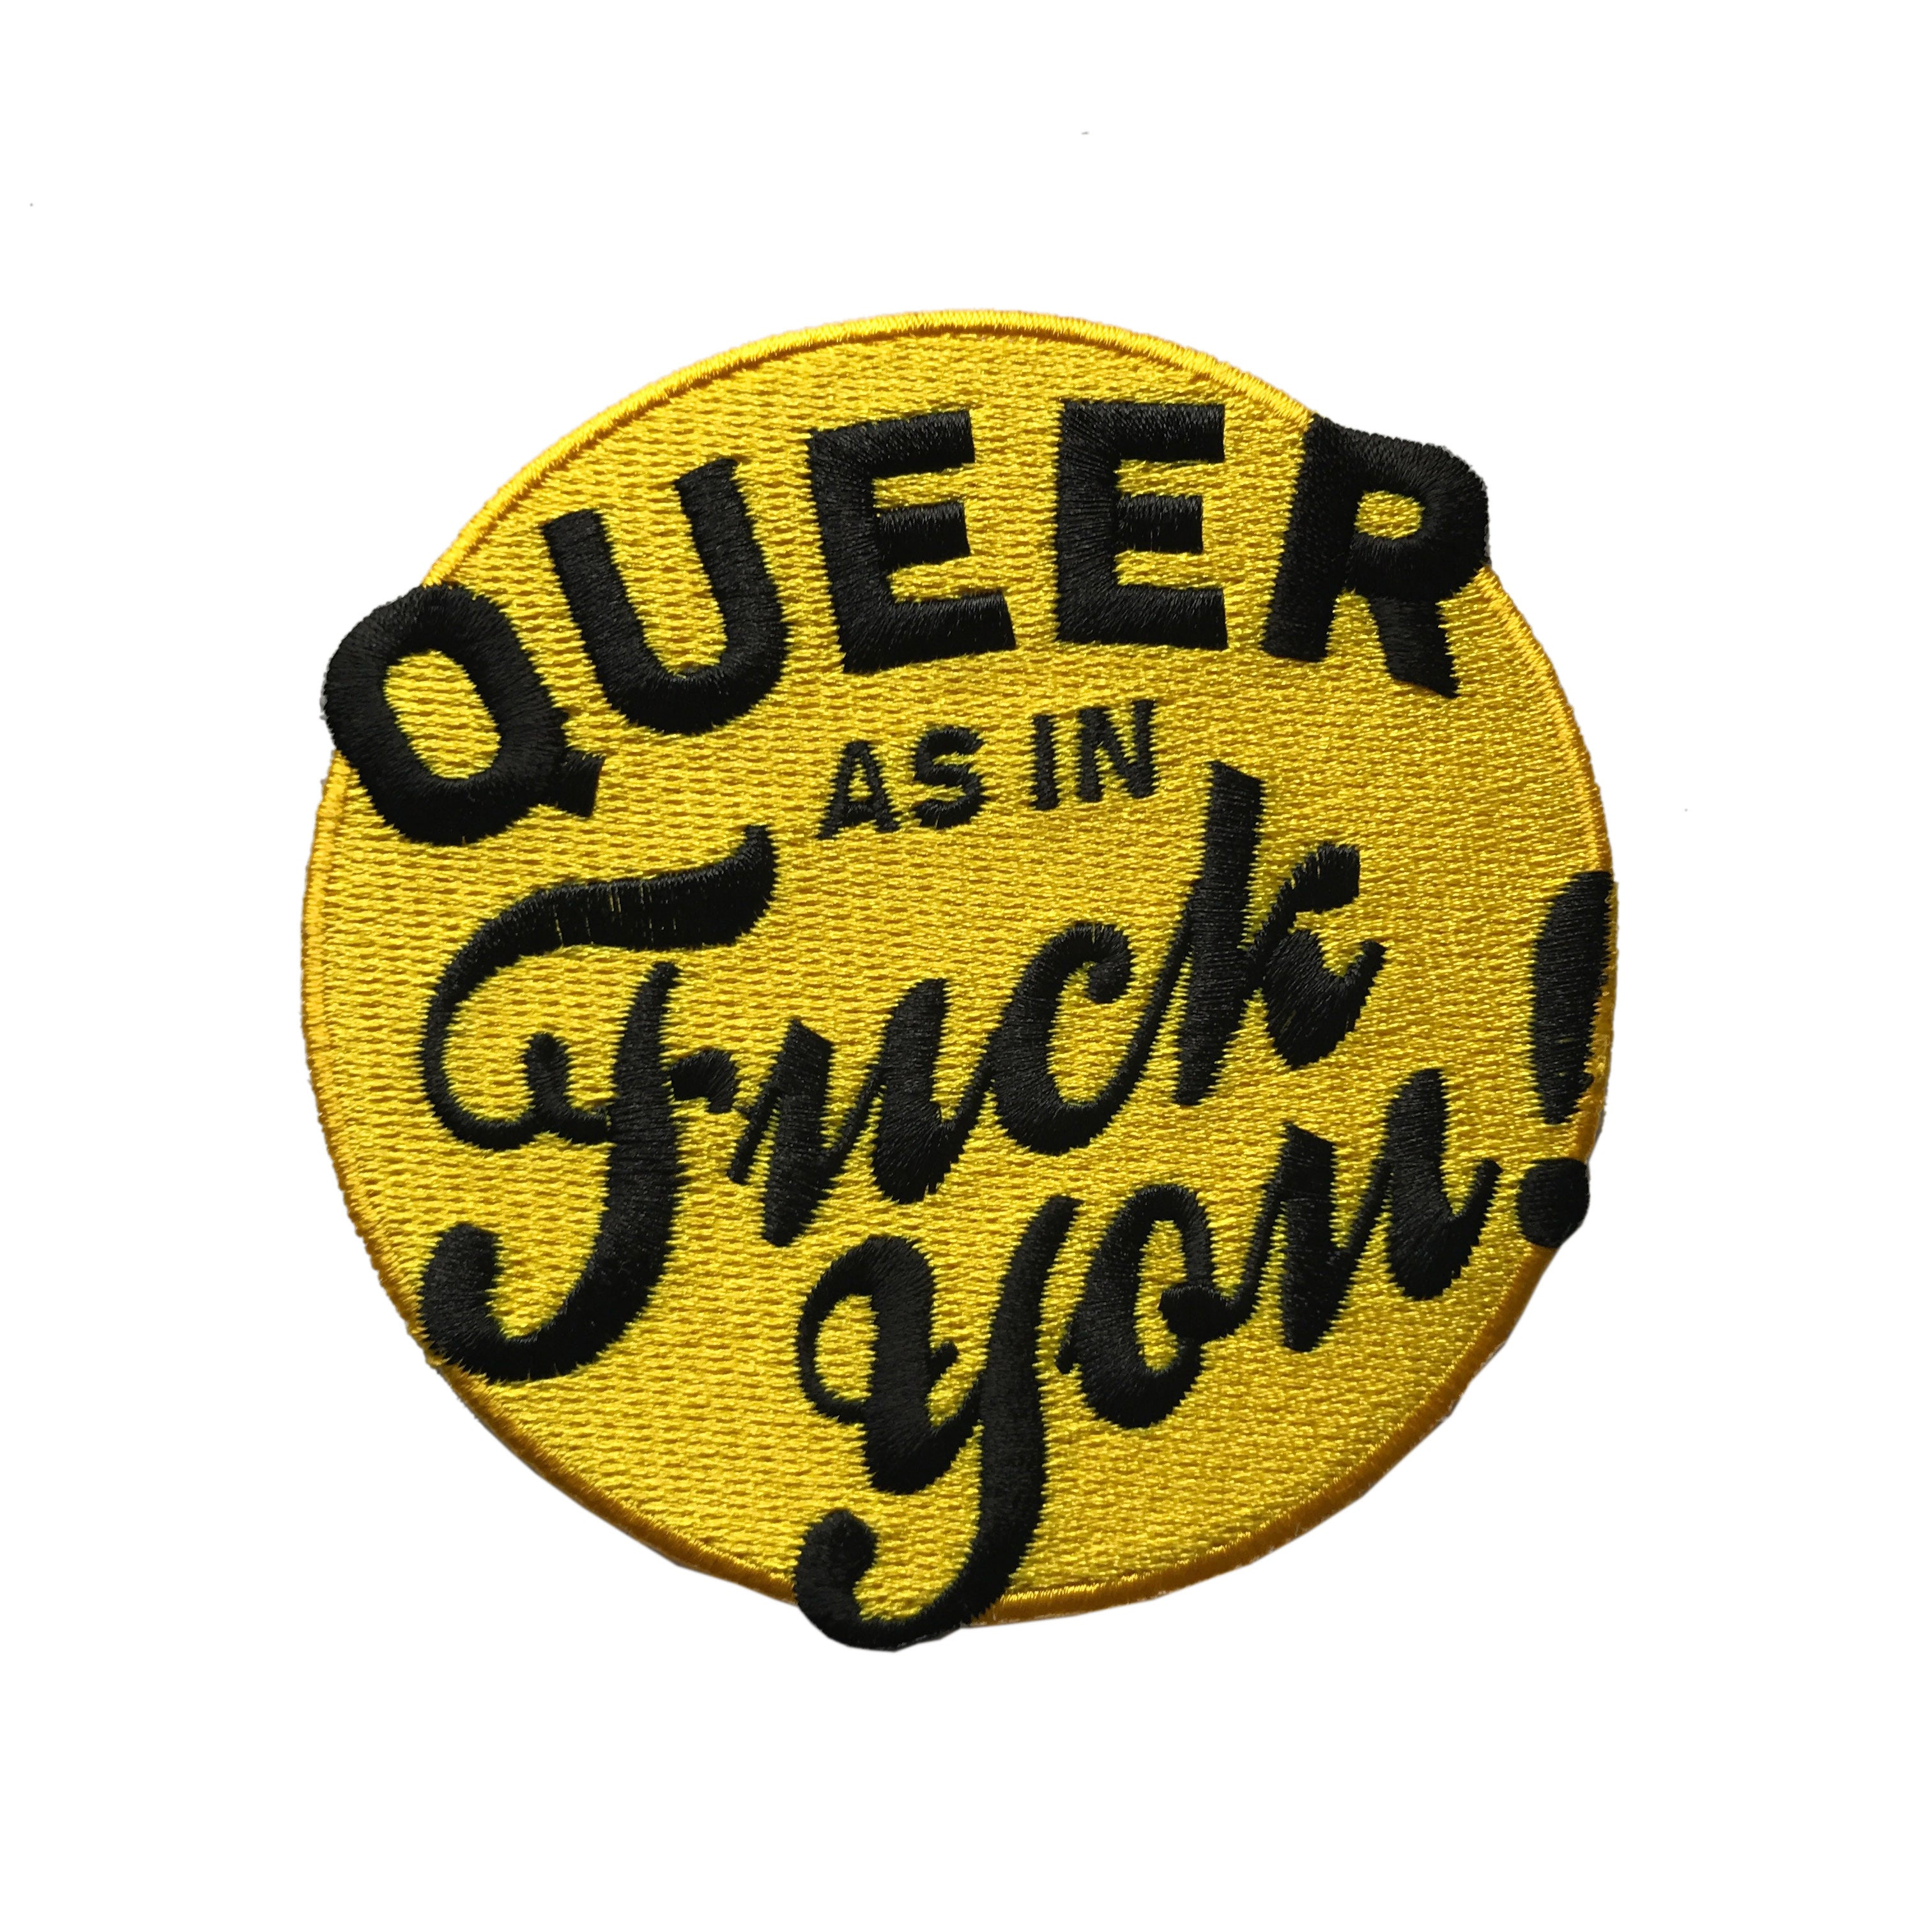 Patch - Queer As In F You